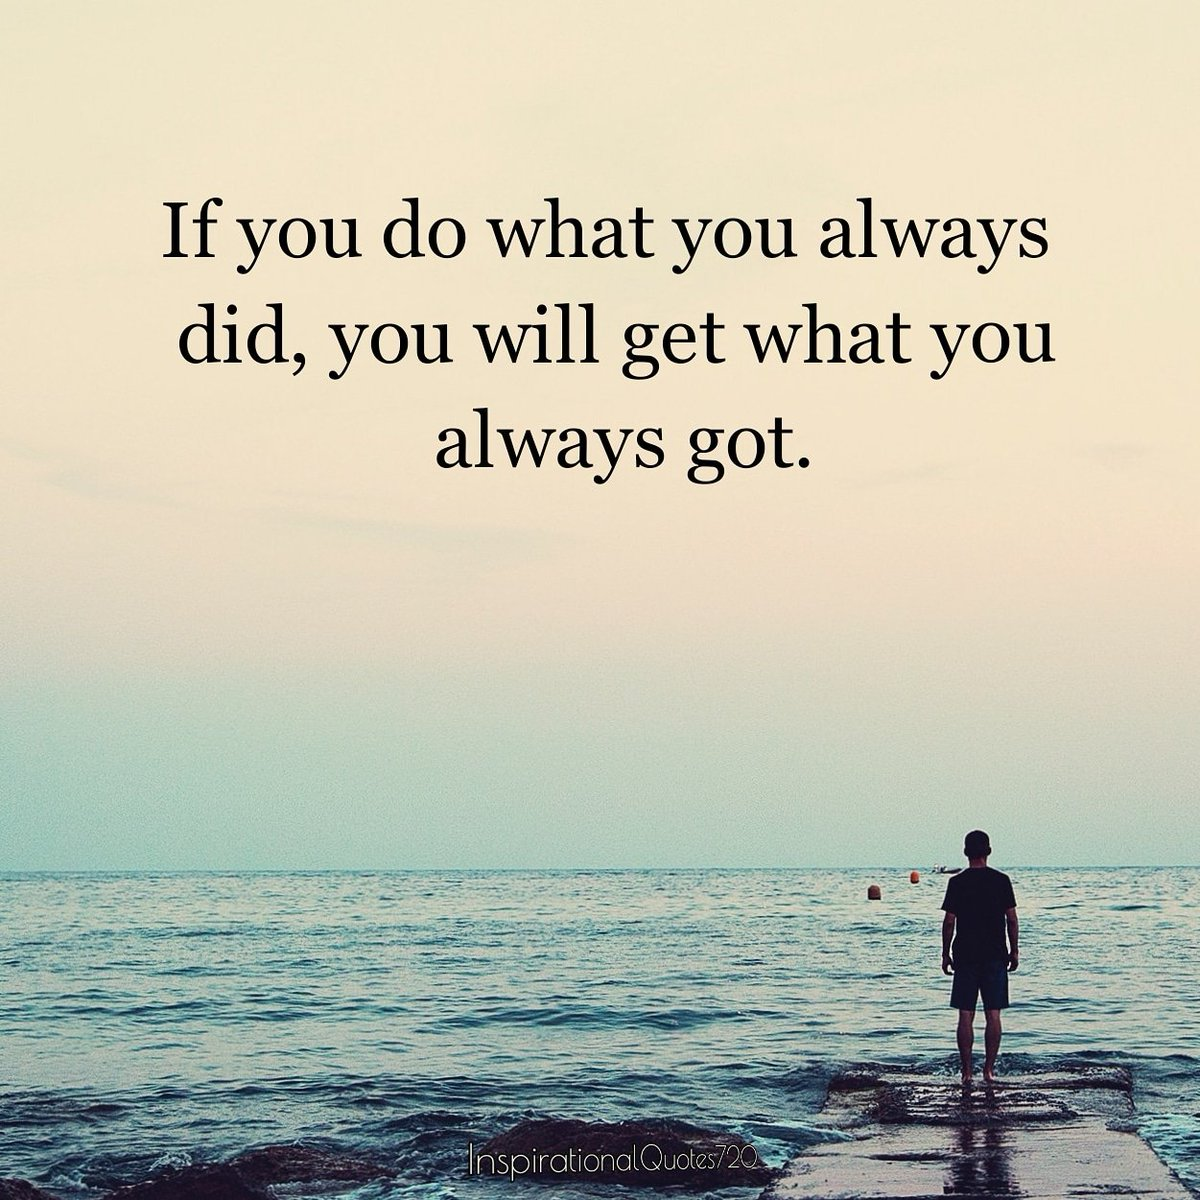 If you do what you always did, you will get what you always got. #MotivationalQuotes #inspirationalquote #Wisdom<br>http://pic.twitter.com/rPvdJ1Y2Vy